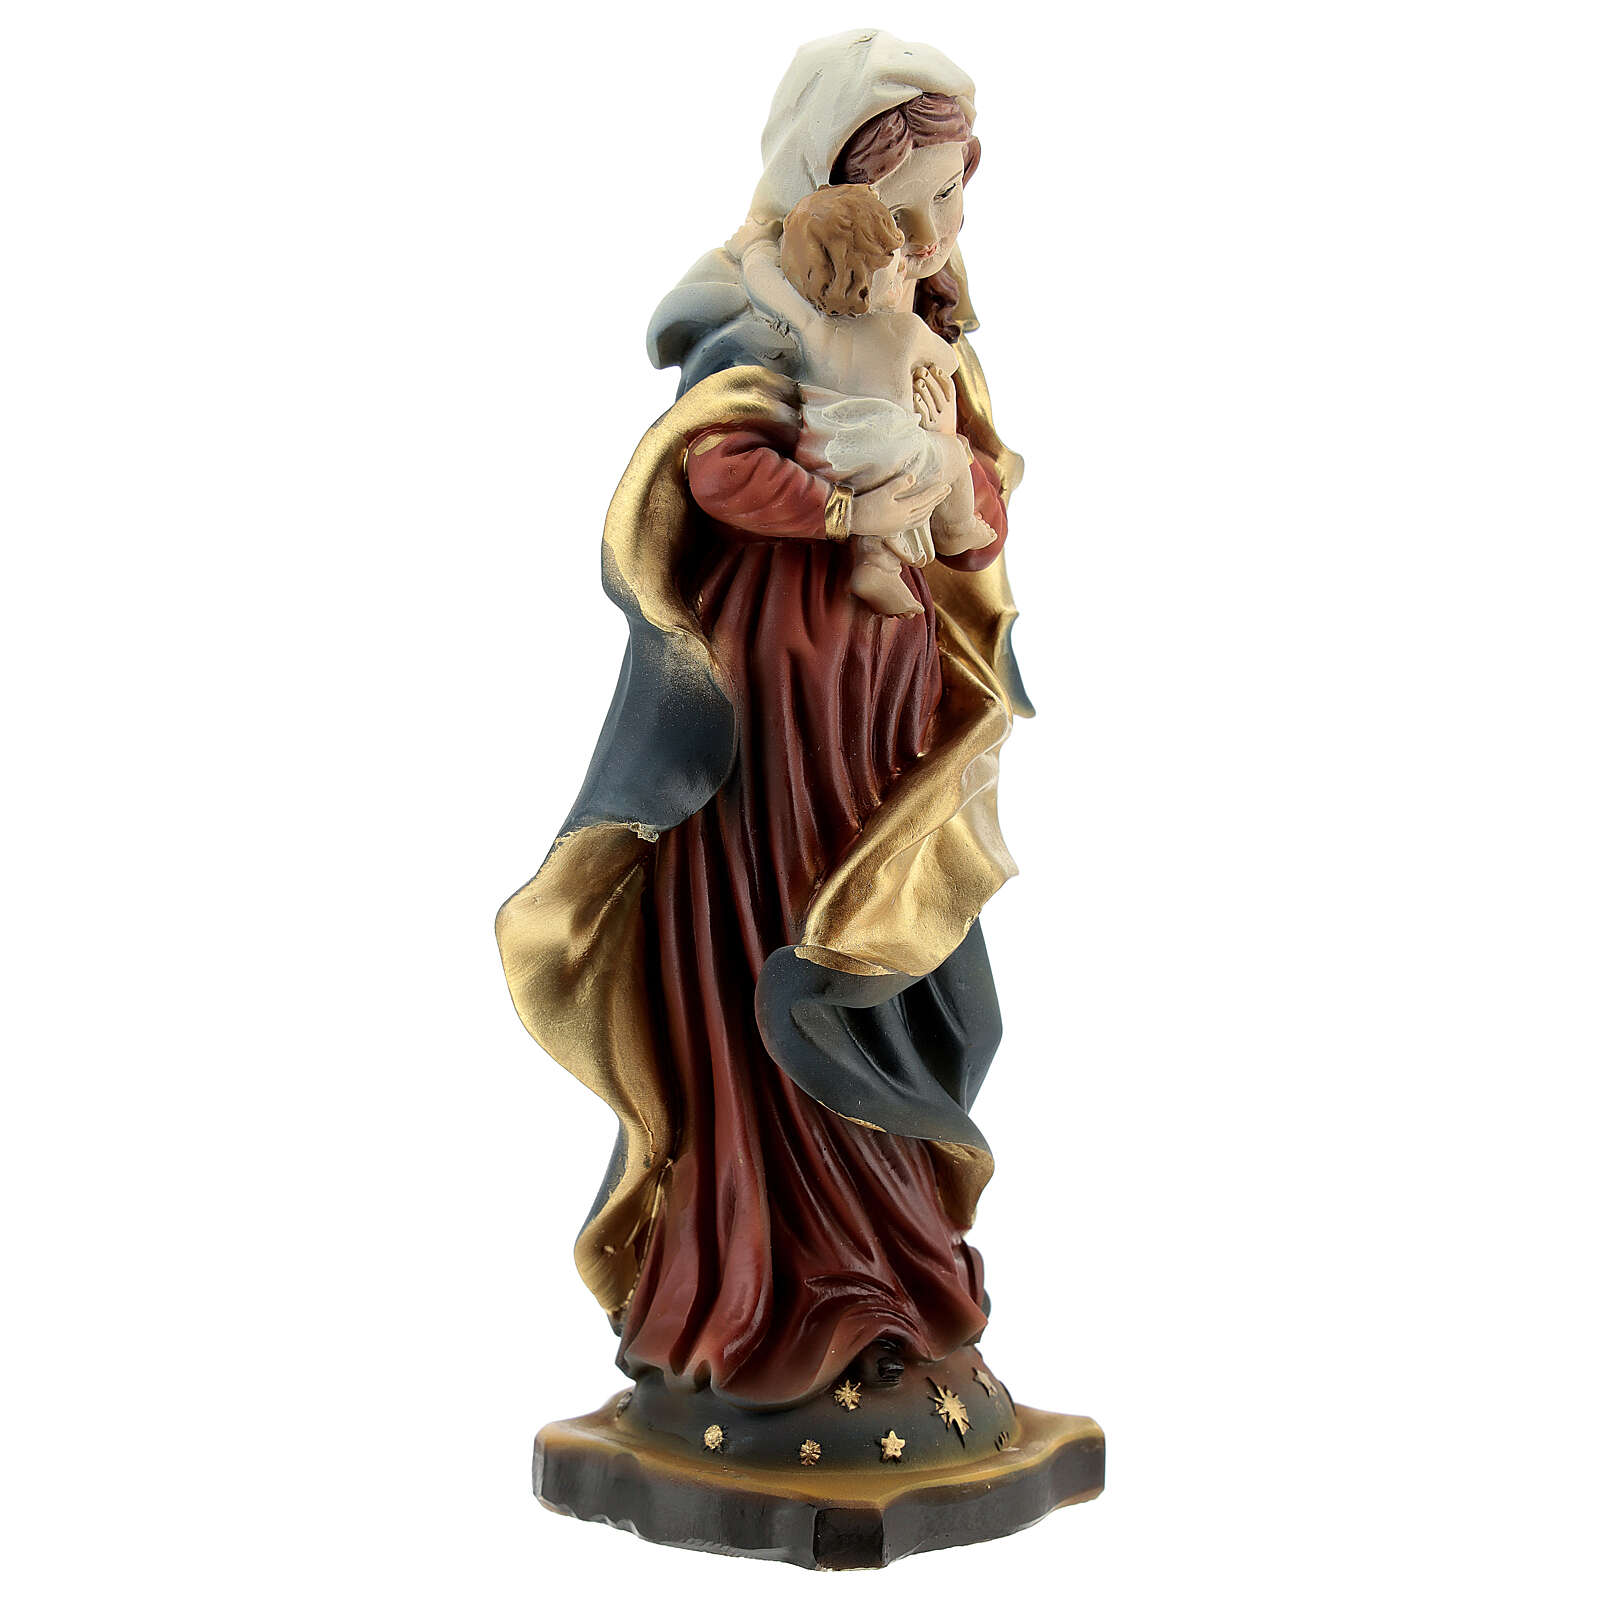 Virgin Mary Baby Jesus sky-blue vault statue resin 14 cm 4